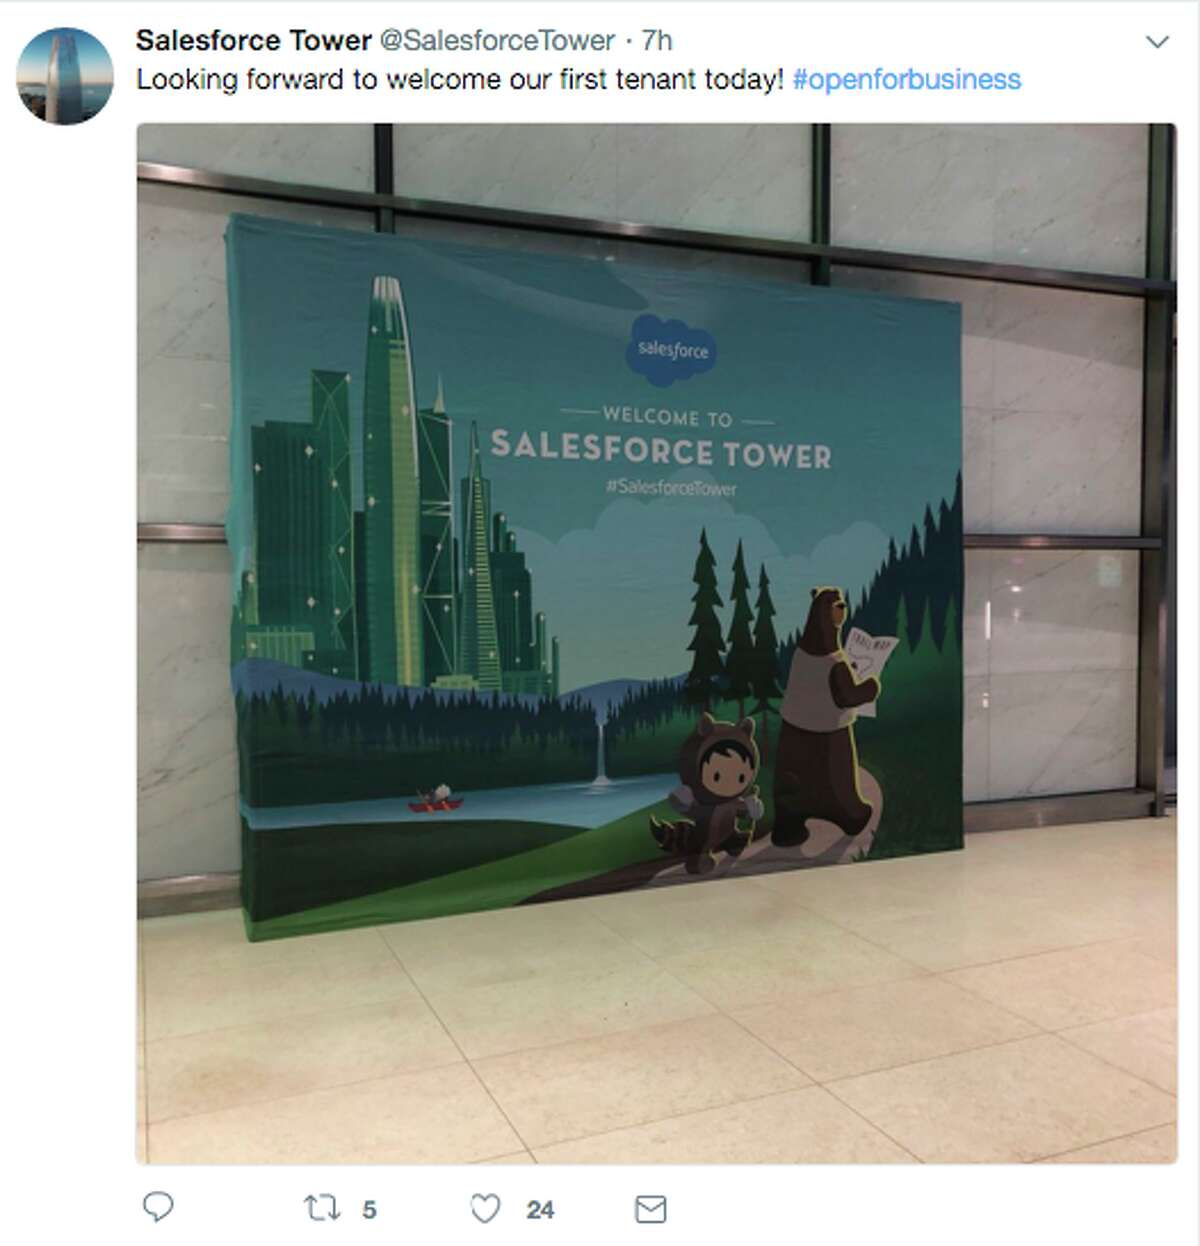 People react to the opening day of Salesforce Tower in San Francisco on Monday, January 8, 2017.